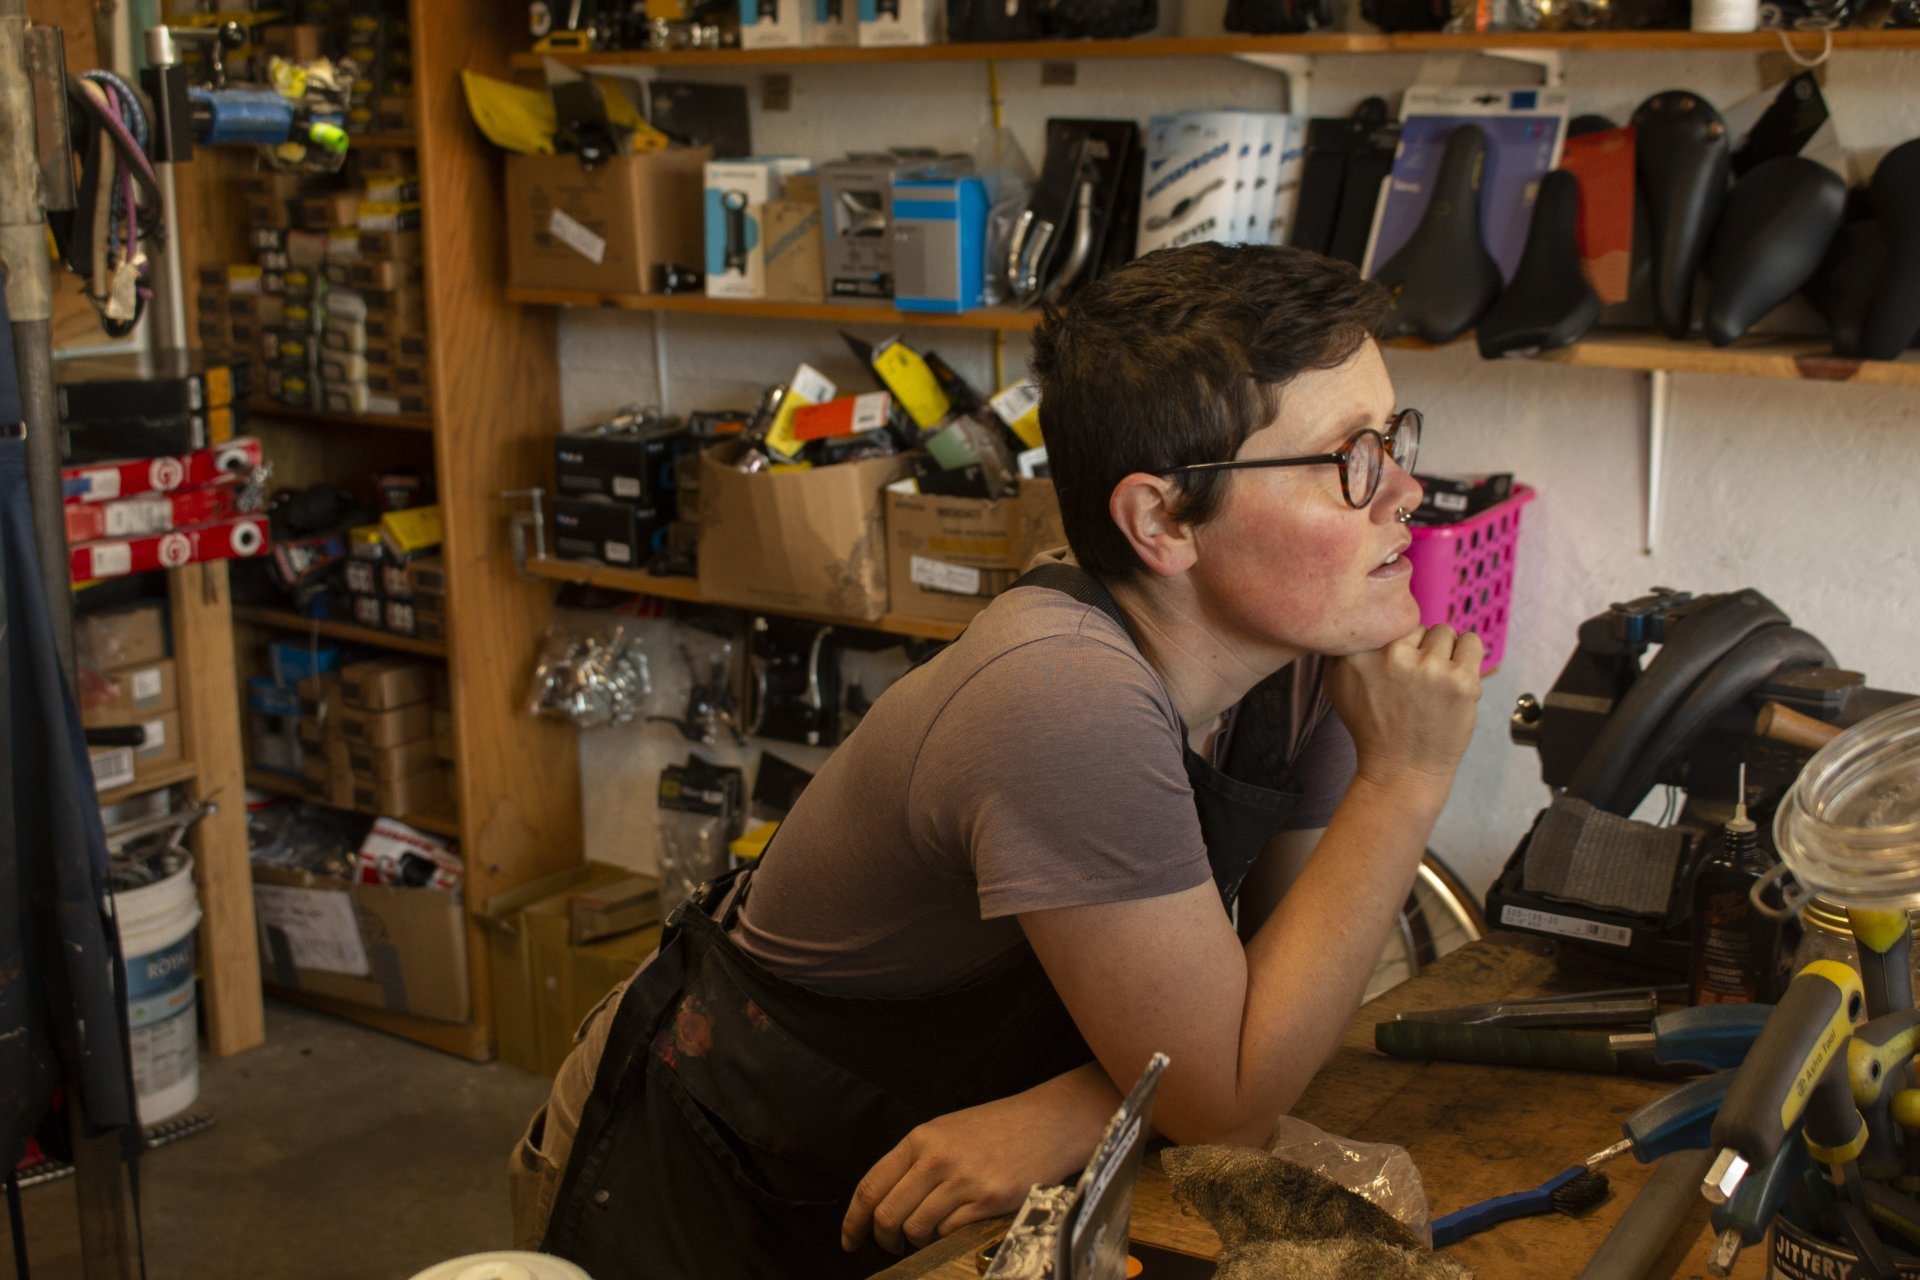 Sage Saatdjian explains the philosophy behind opening Mooncycles during a break in the shop in Arcata, CA. | Photo by Sean Bendon